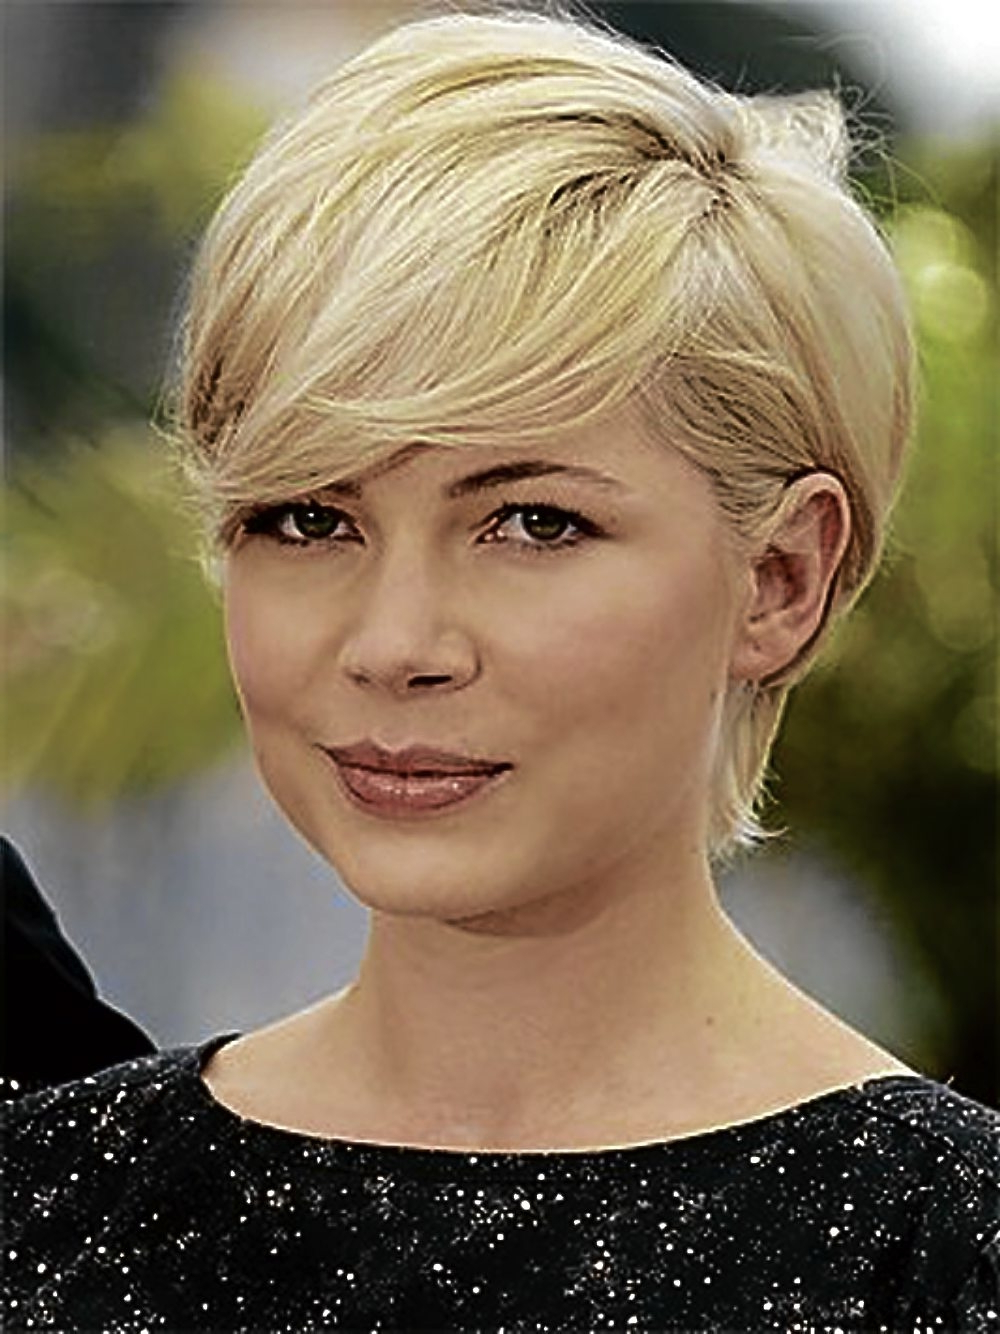 Short Pixie Haircuts For Thick Hair – Short And Cuts Hairstyles With Regard To Edgy Short Haircuts For Thick Hair (View 14 of 25)